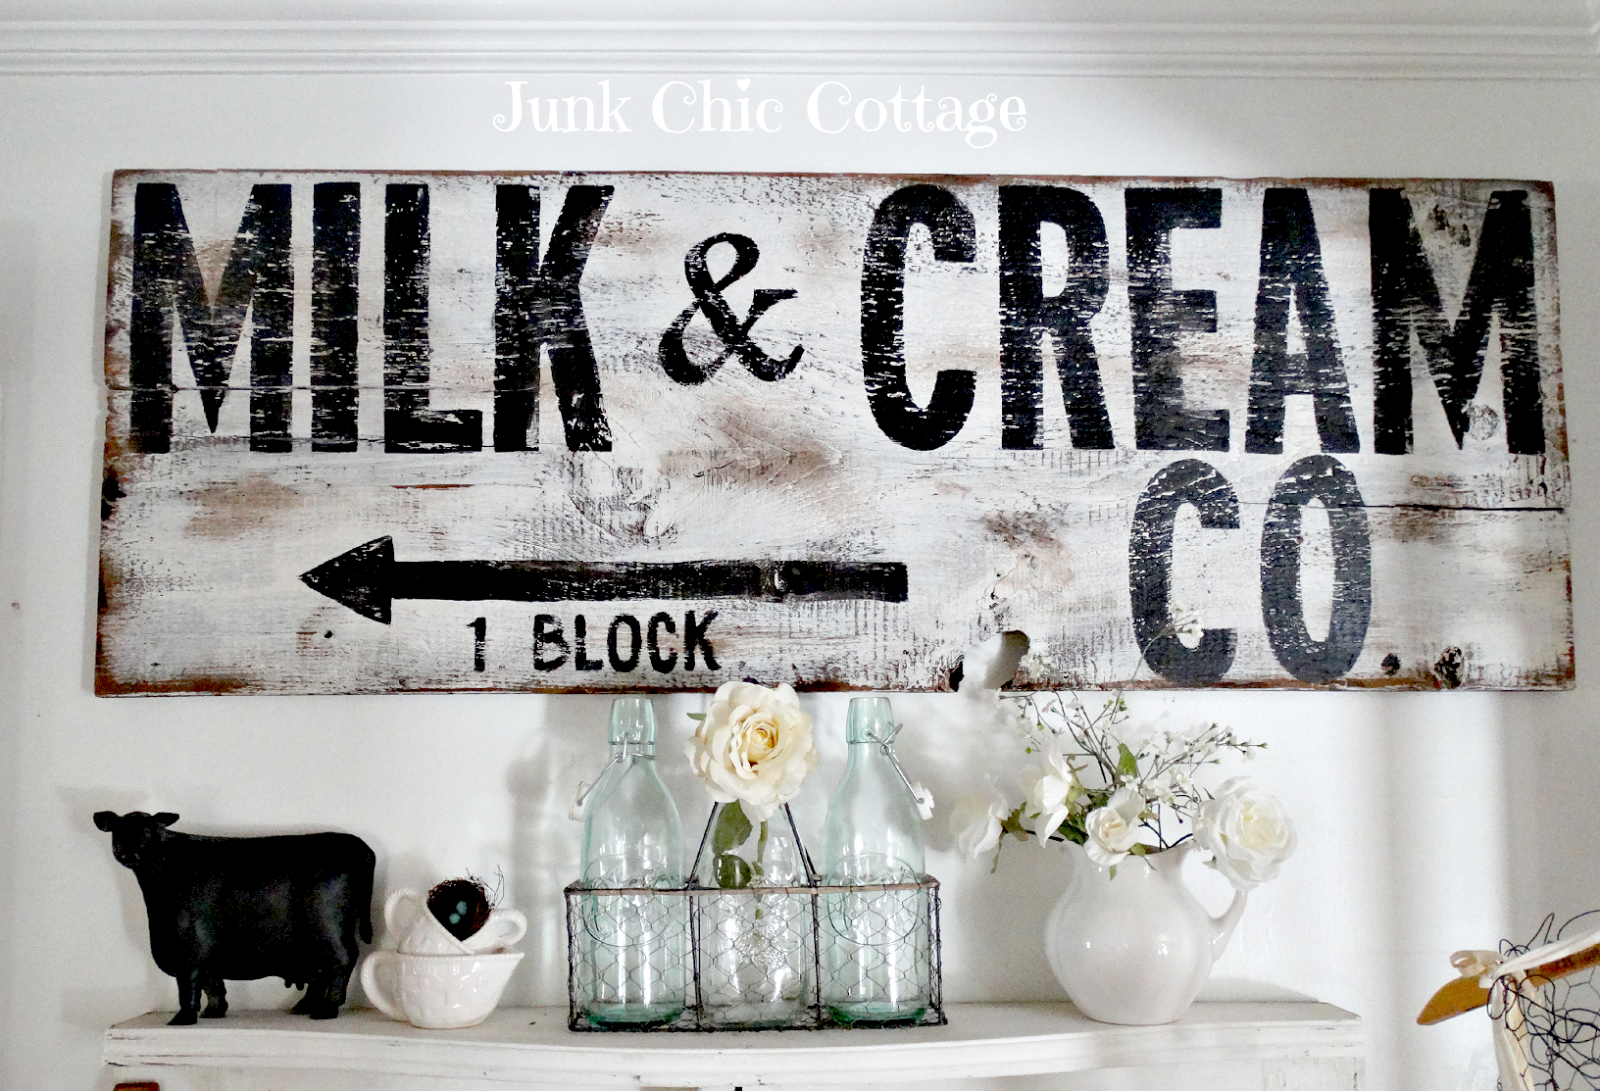 upclosemilkcream junk chic cottage